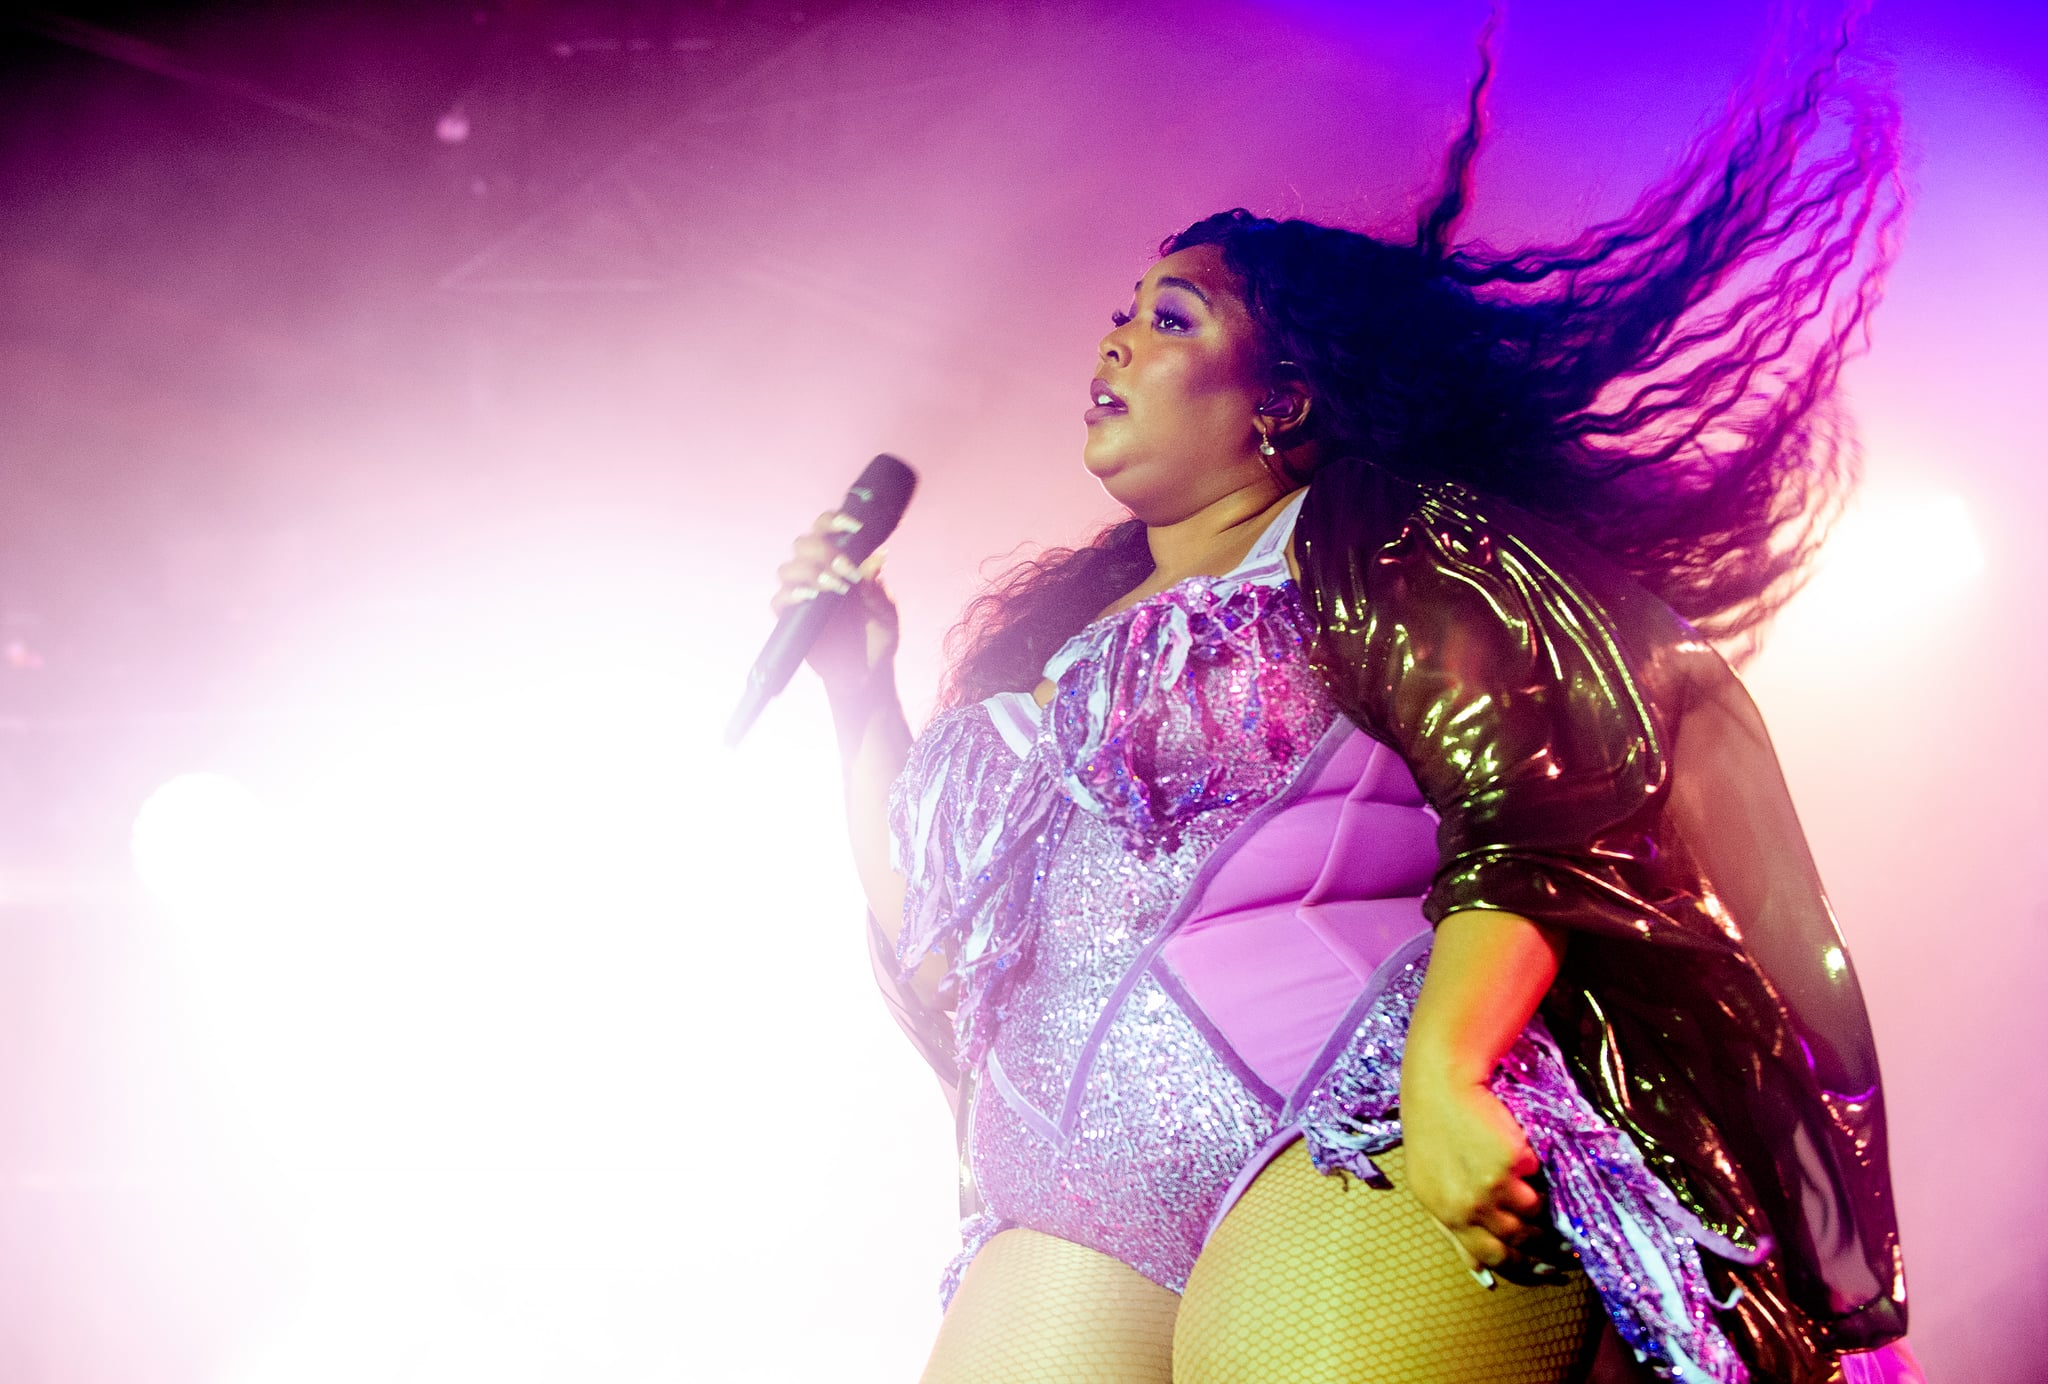 MANCHESTER, ENGLAND - NOVEMBER 11: Lizzo performs at Victoria Warehouse on November 11, 2019 in Manchester, England. (Photo by Shirlaine Forrest/WireImage)